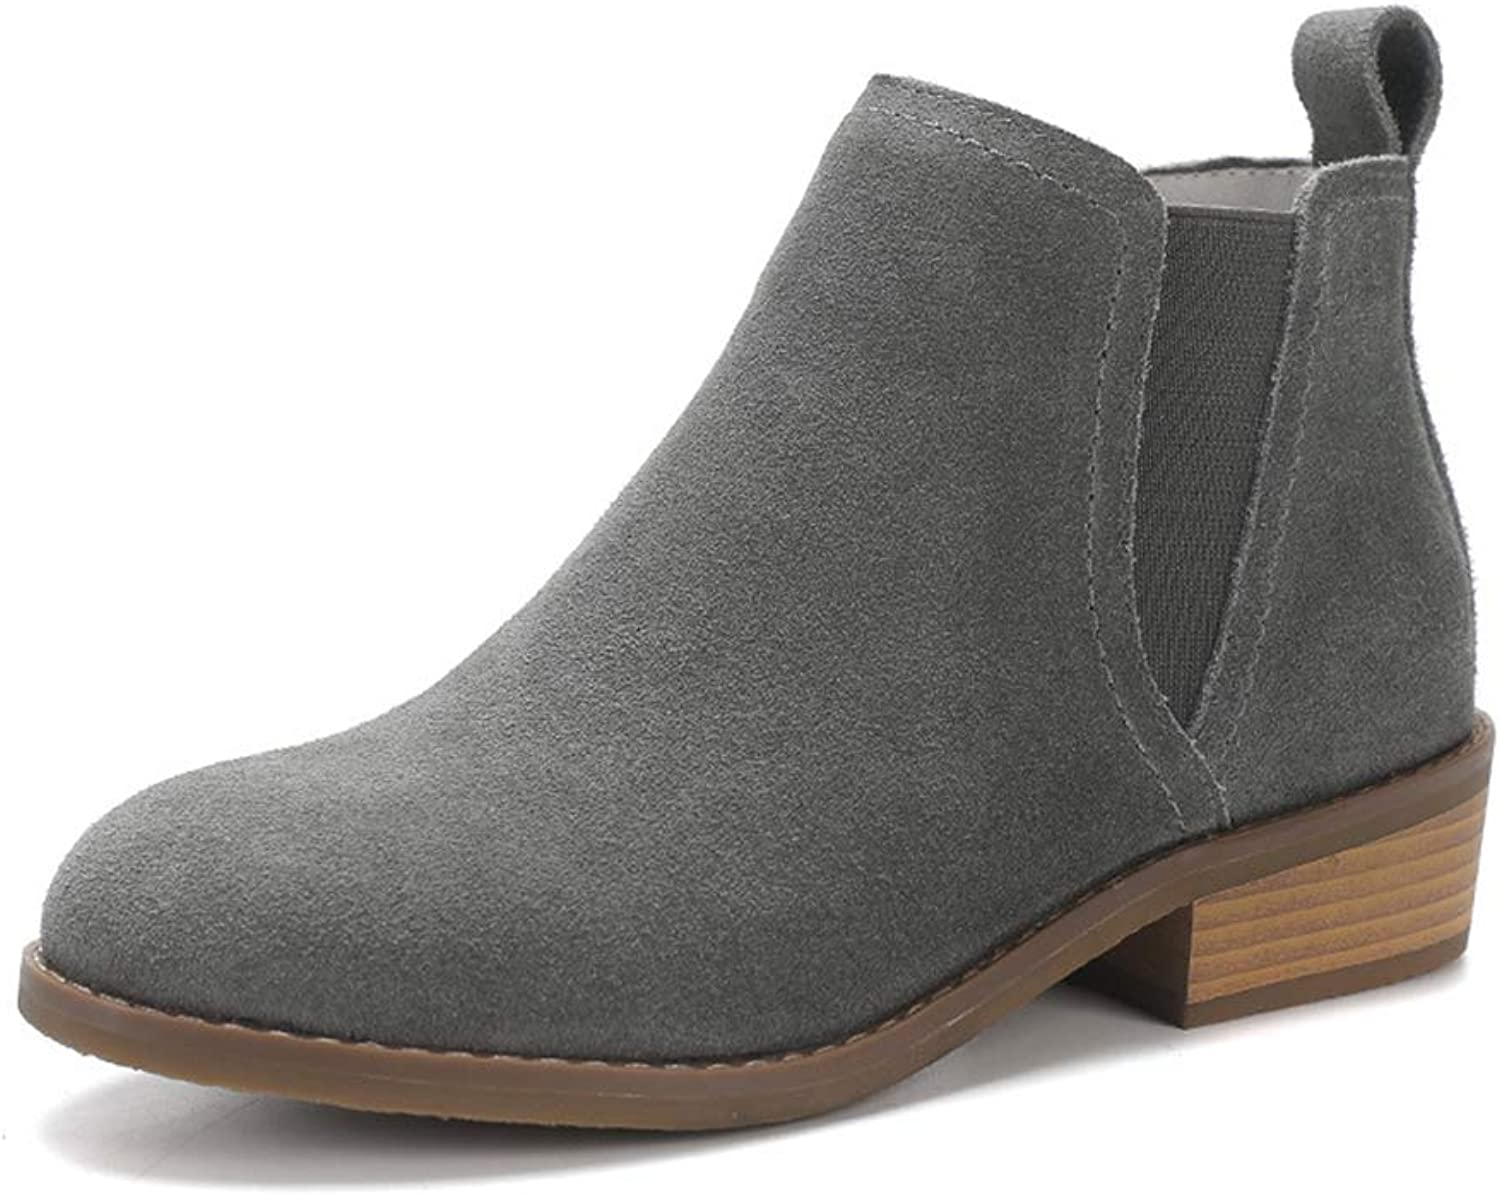 FORTUN Flat Martin Boots Women's Boots Casual Booties Ankle Boots